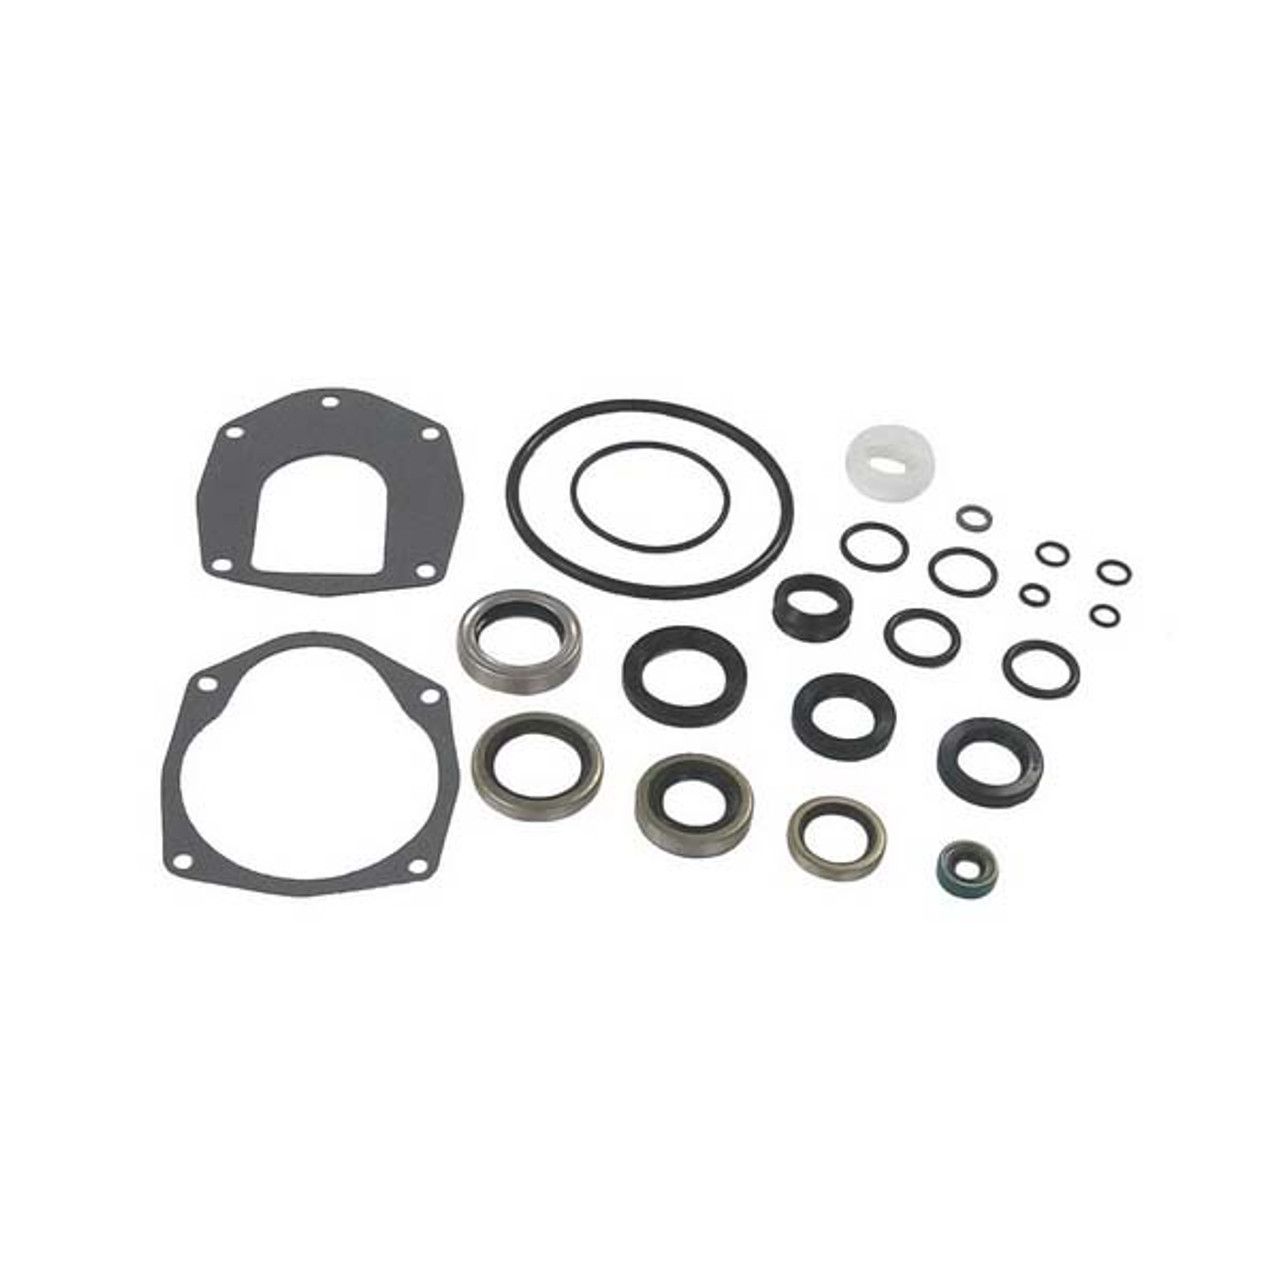 Lower Gear Case Seal Kit for Mercruiser Alpha #1 R MR compare to 26-33144A2